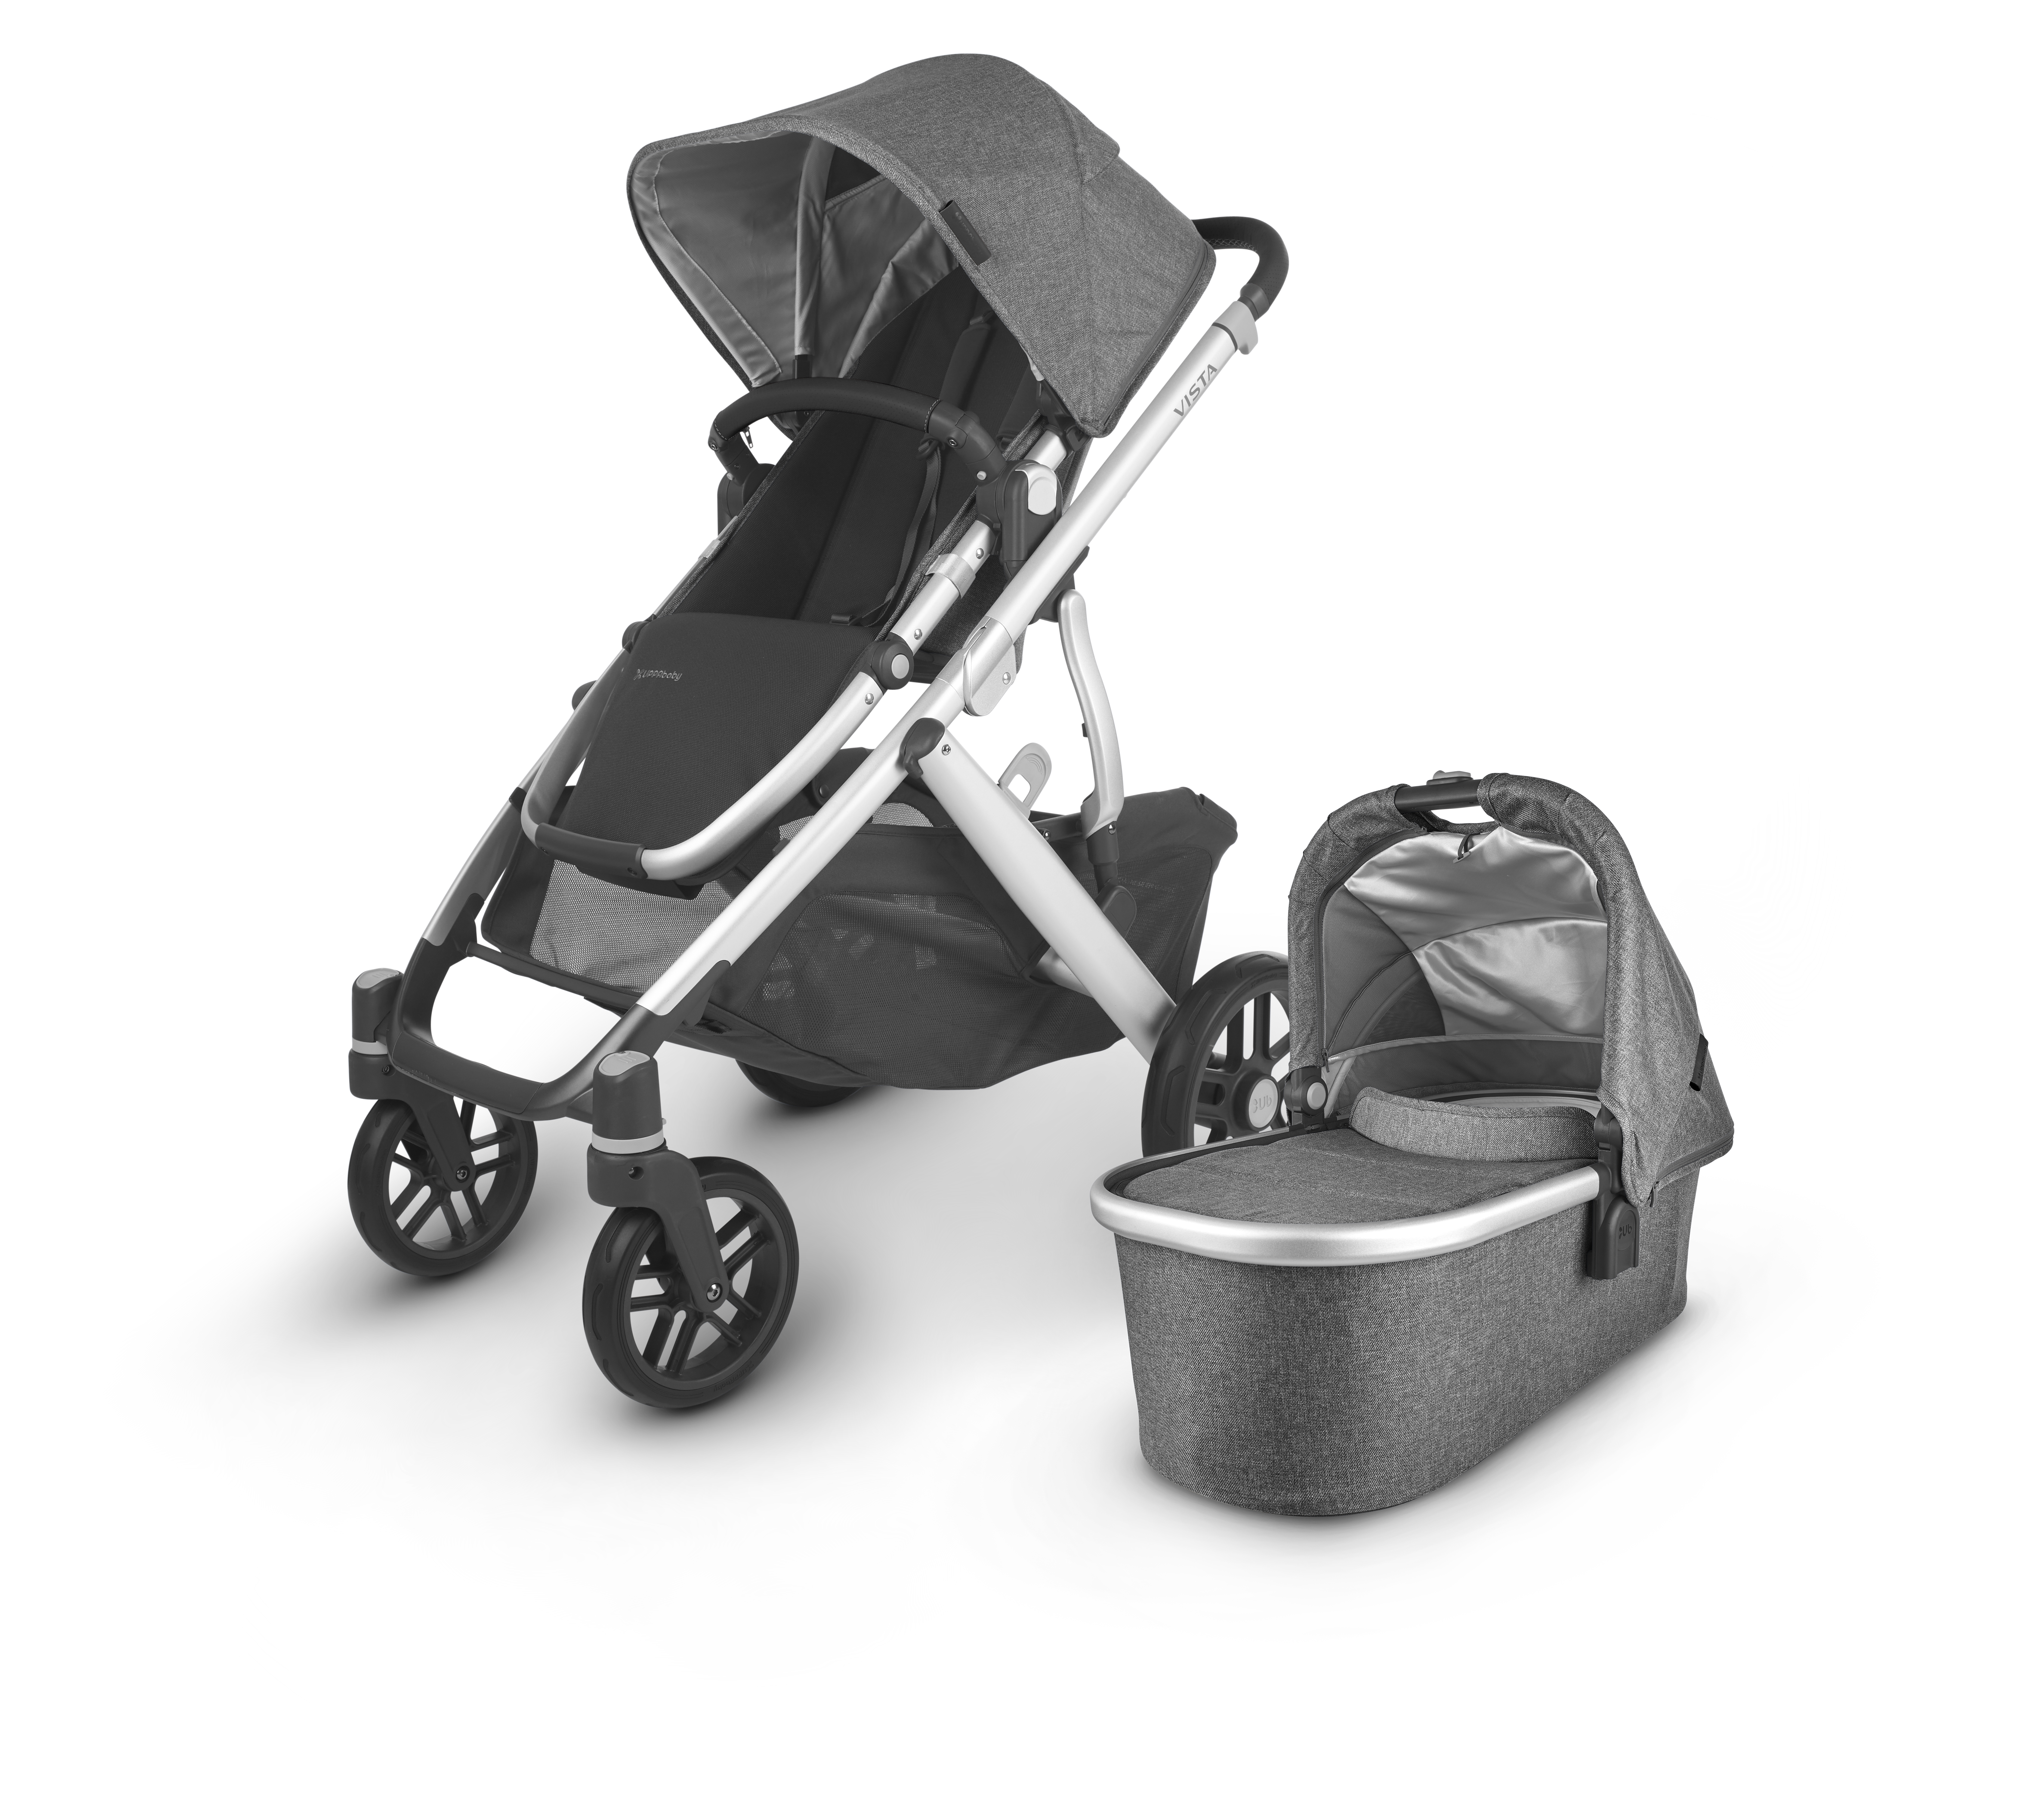 UPPAbaby Vista V2 Stroller - Jordan (Charcoal Melange/Silver/Black Leather)